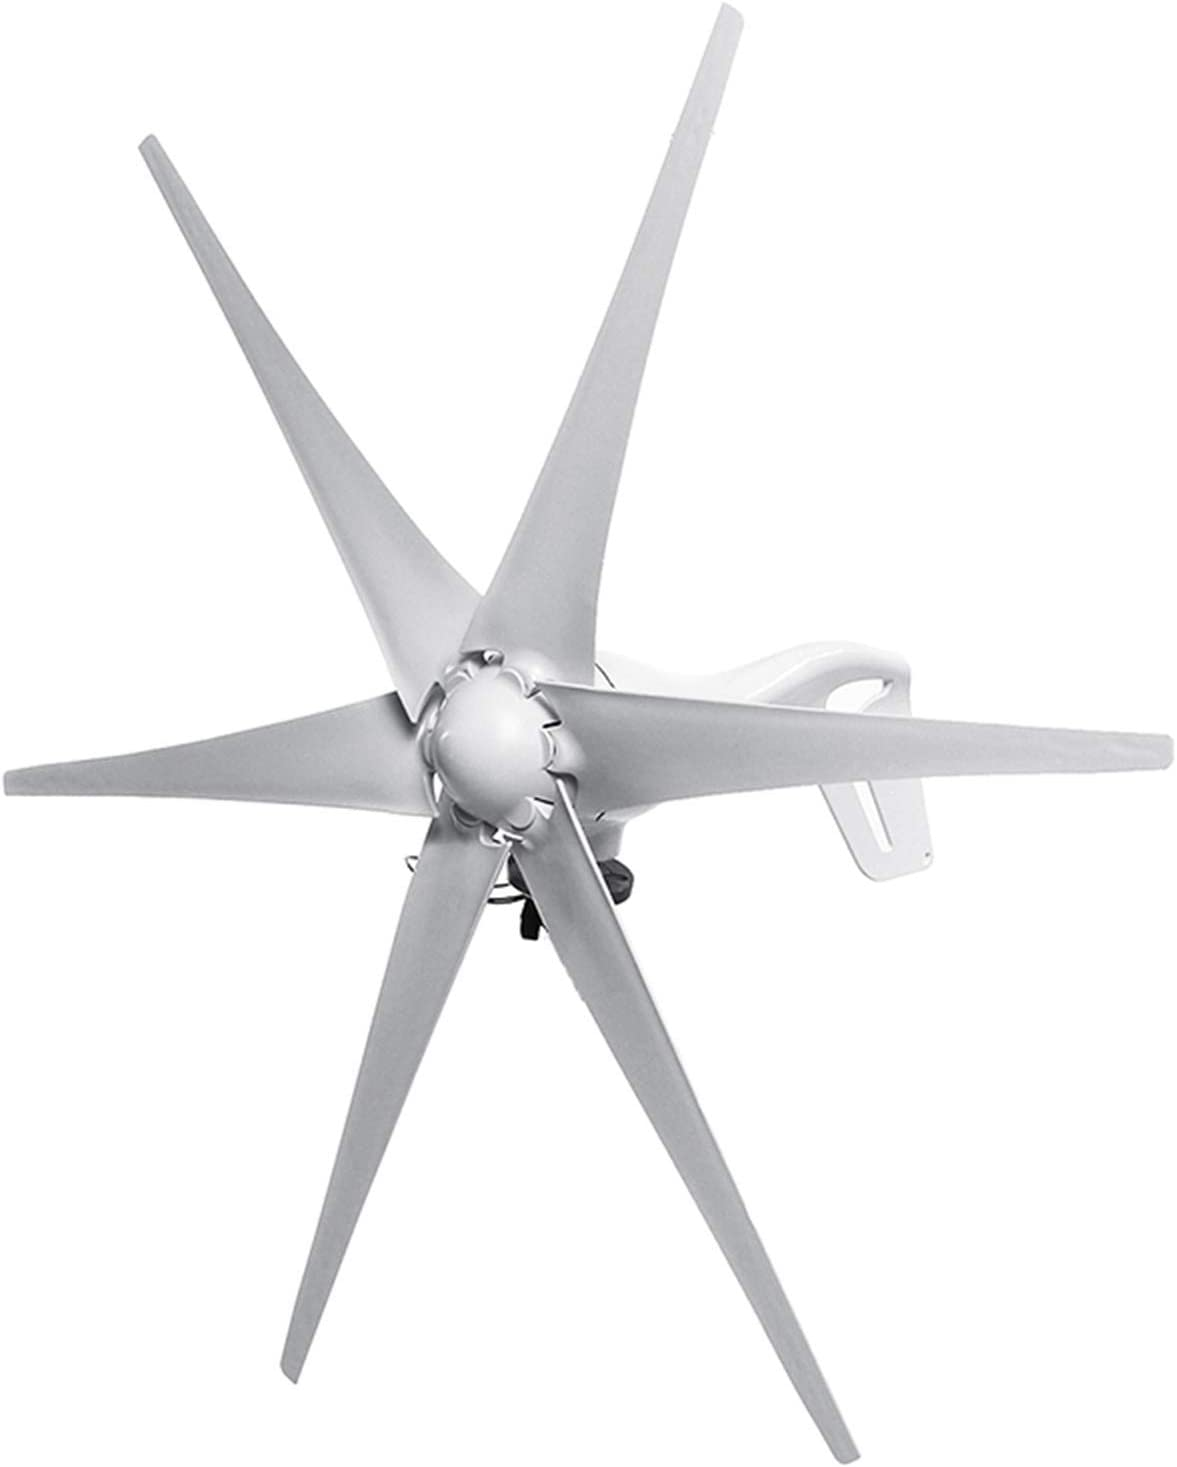 2500W Home 6 Blades Wind Turbine,DC 12V/24V Generator Power Battery Charge with Controller Free Energy for Street Lamps Home